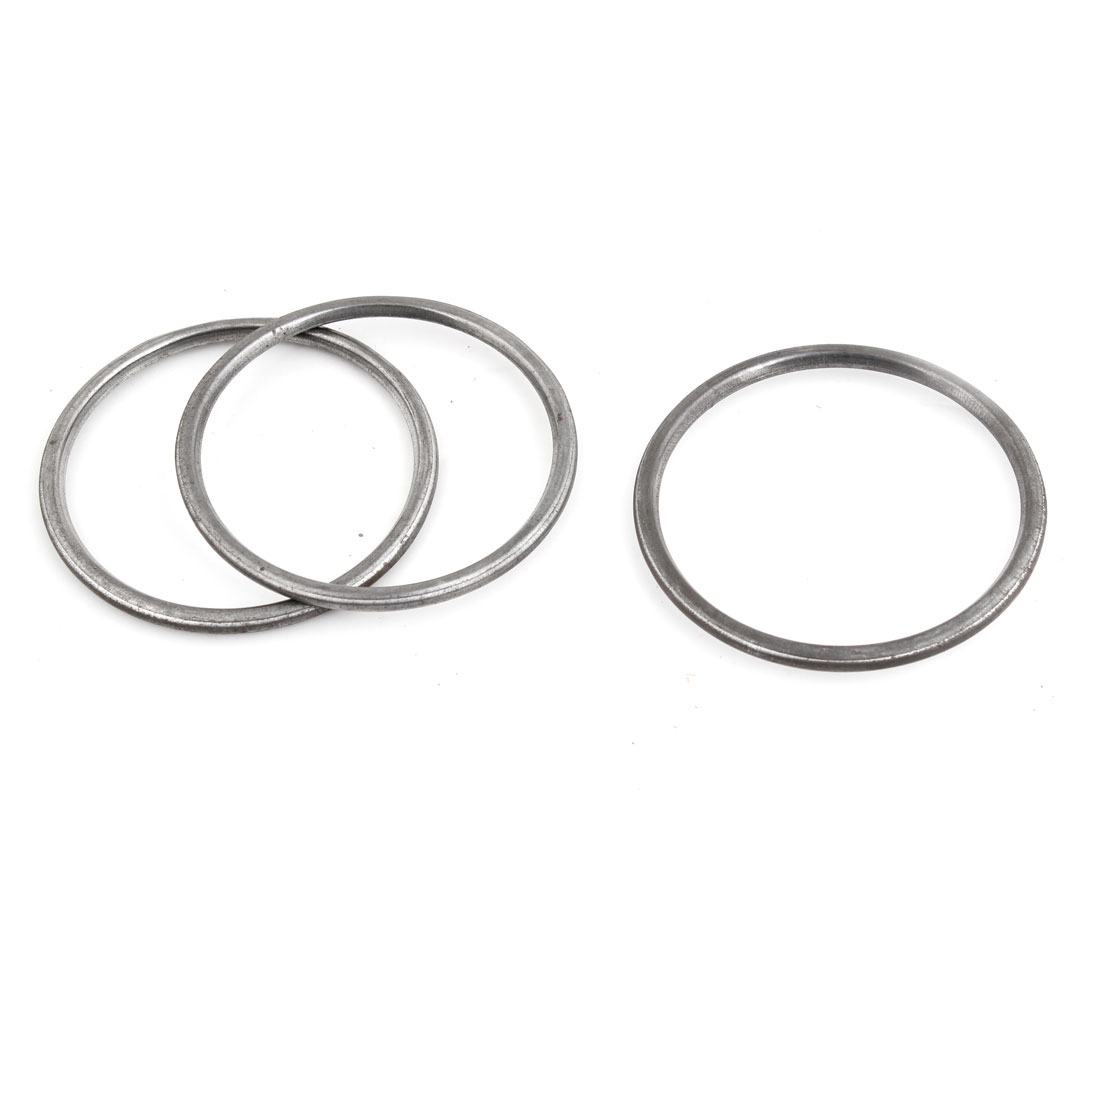 3 Pcs Vehicle Iron 53mm Inside Dia Engine Silencer Exhaust Gasket Assembly